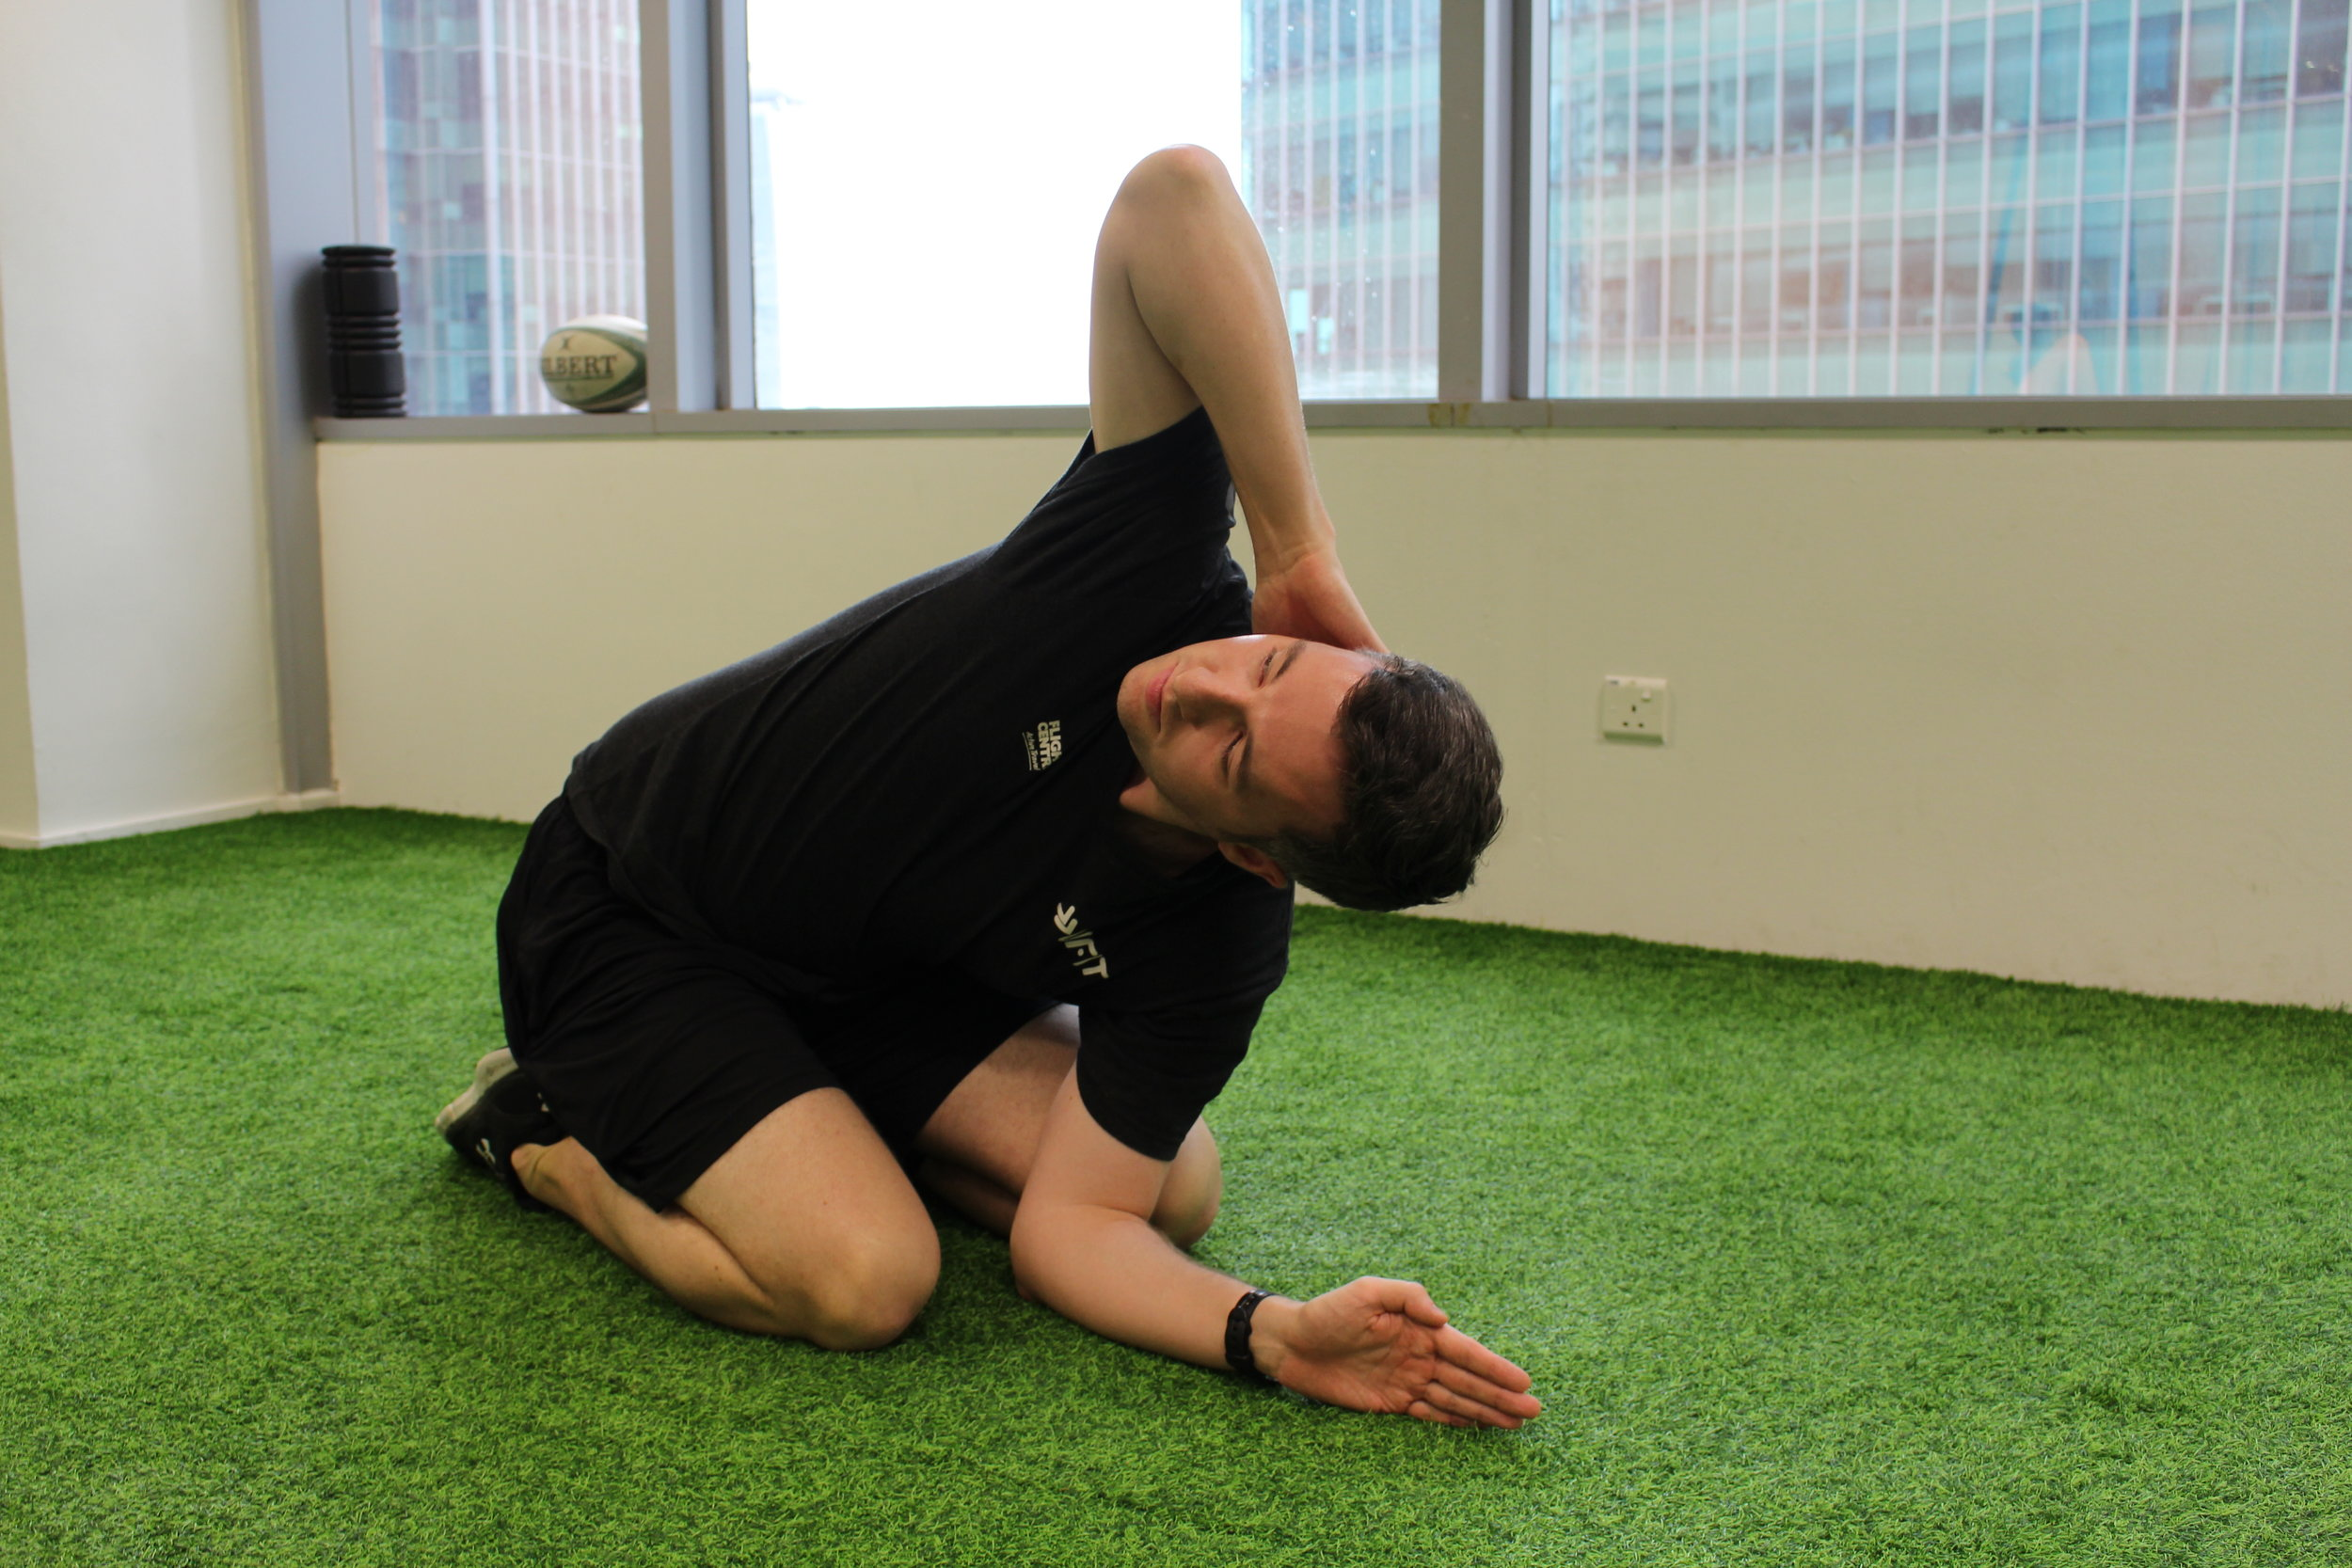 With your hand behind your head, open your chest by raising your elbow up towards the ceiling. The stretch should be felt in the chest and upper back. Perform 10-12 repetitions.